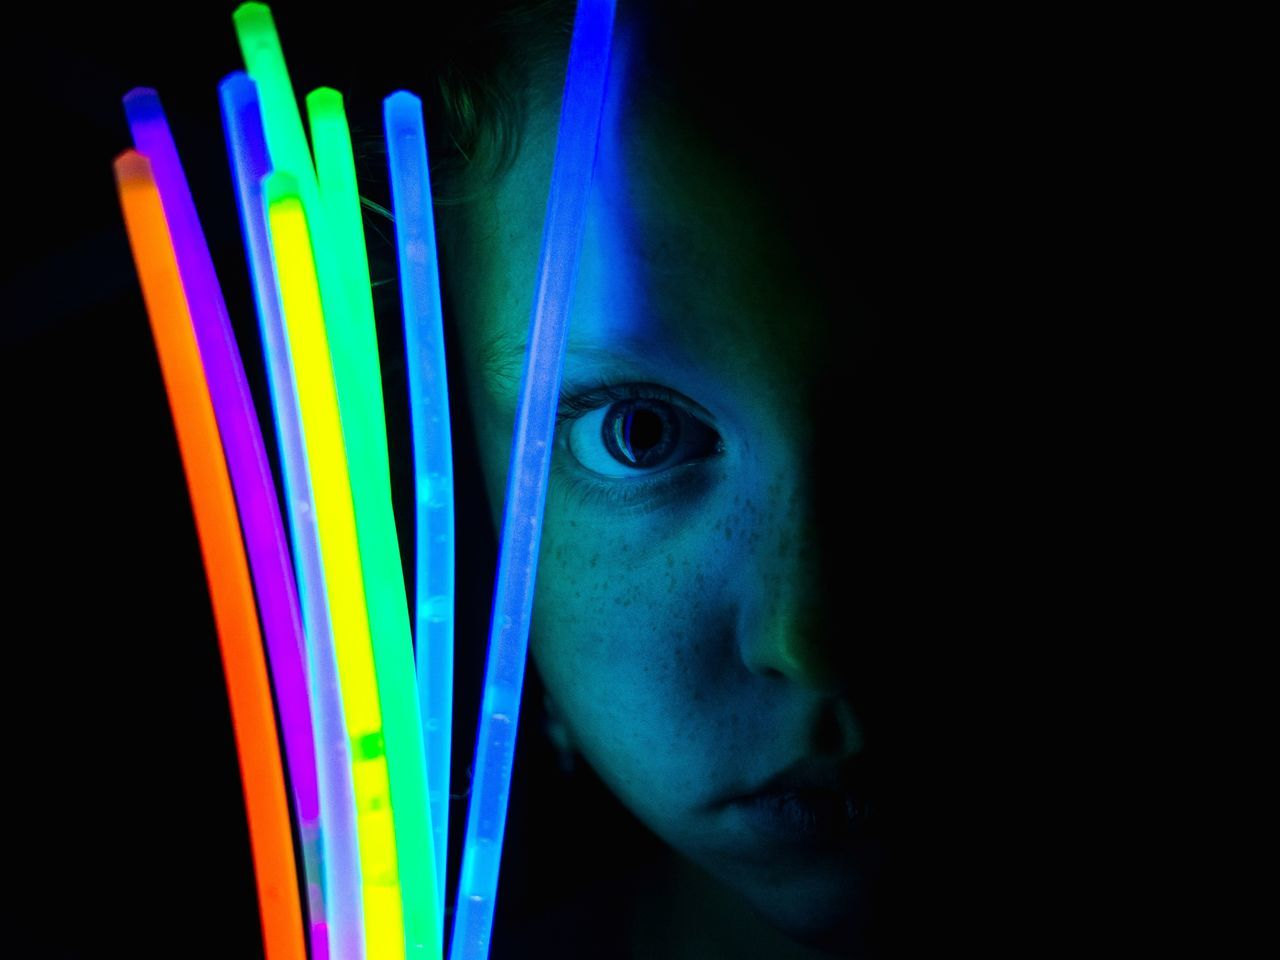 Portrait of girl holding glow sticks against black background